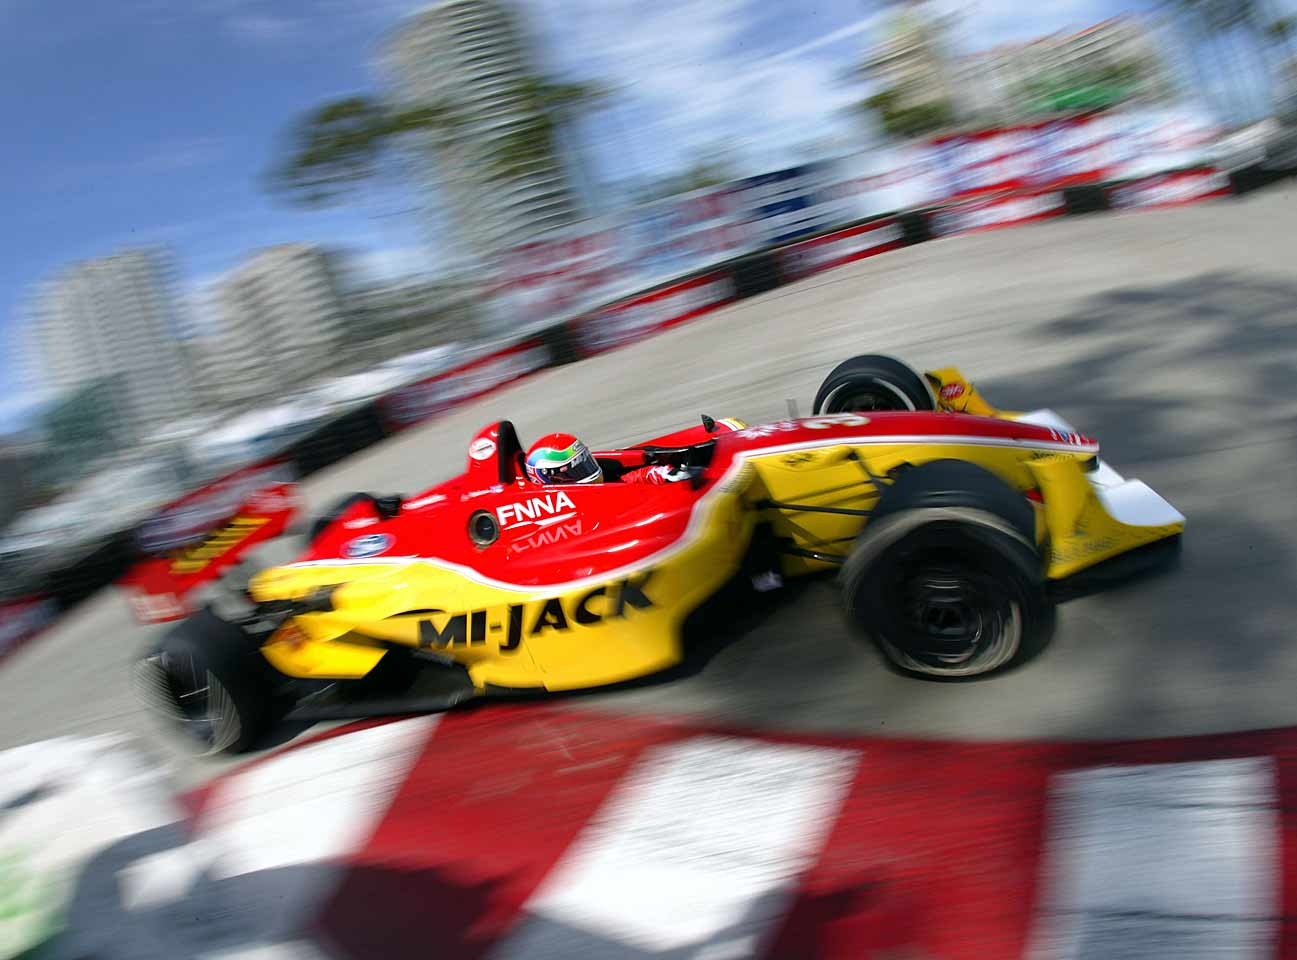 Moving to the U.S. in 2004, Wilson began racing in the Champ Car Series, going on to win four races (his first came in Toronto in 2005) plus three more after the series became IndyCar.